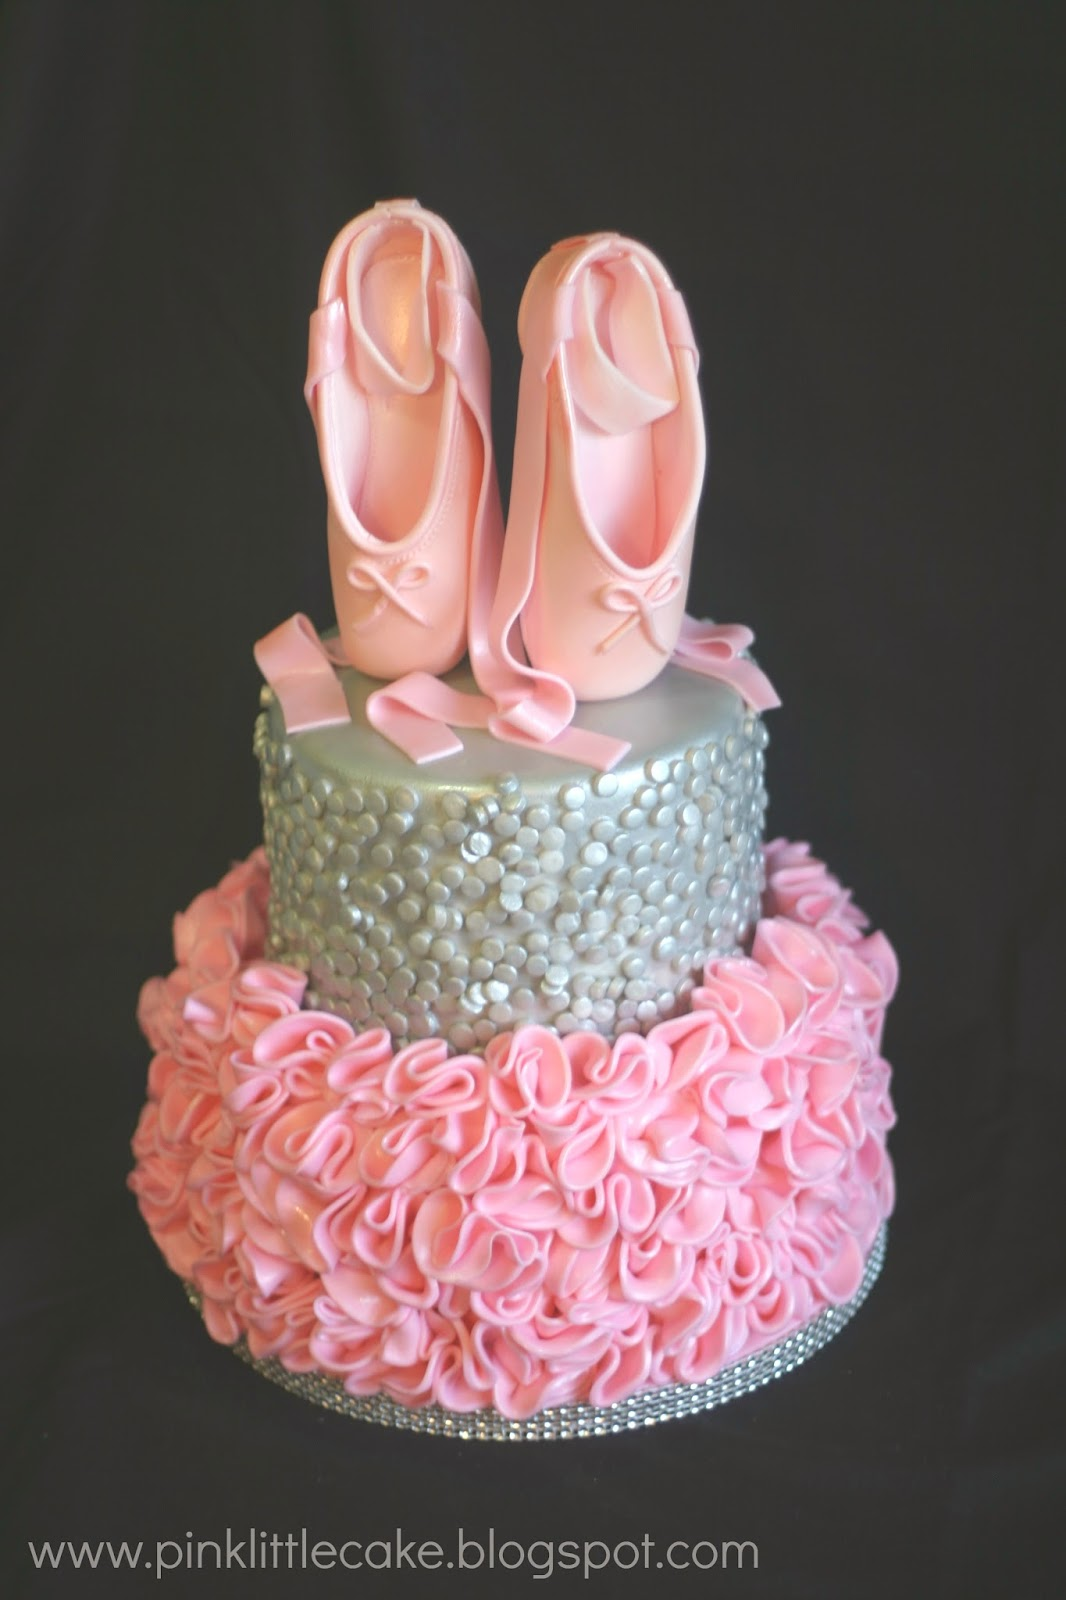 Cake Design Ballet : Pink Little Cake: Pink and Ruffles Ballerina Cake